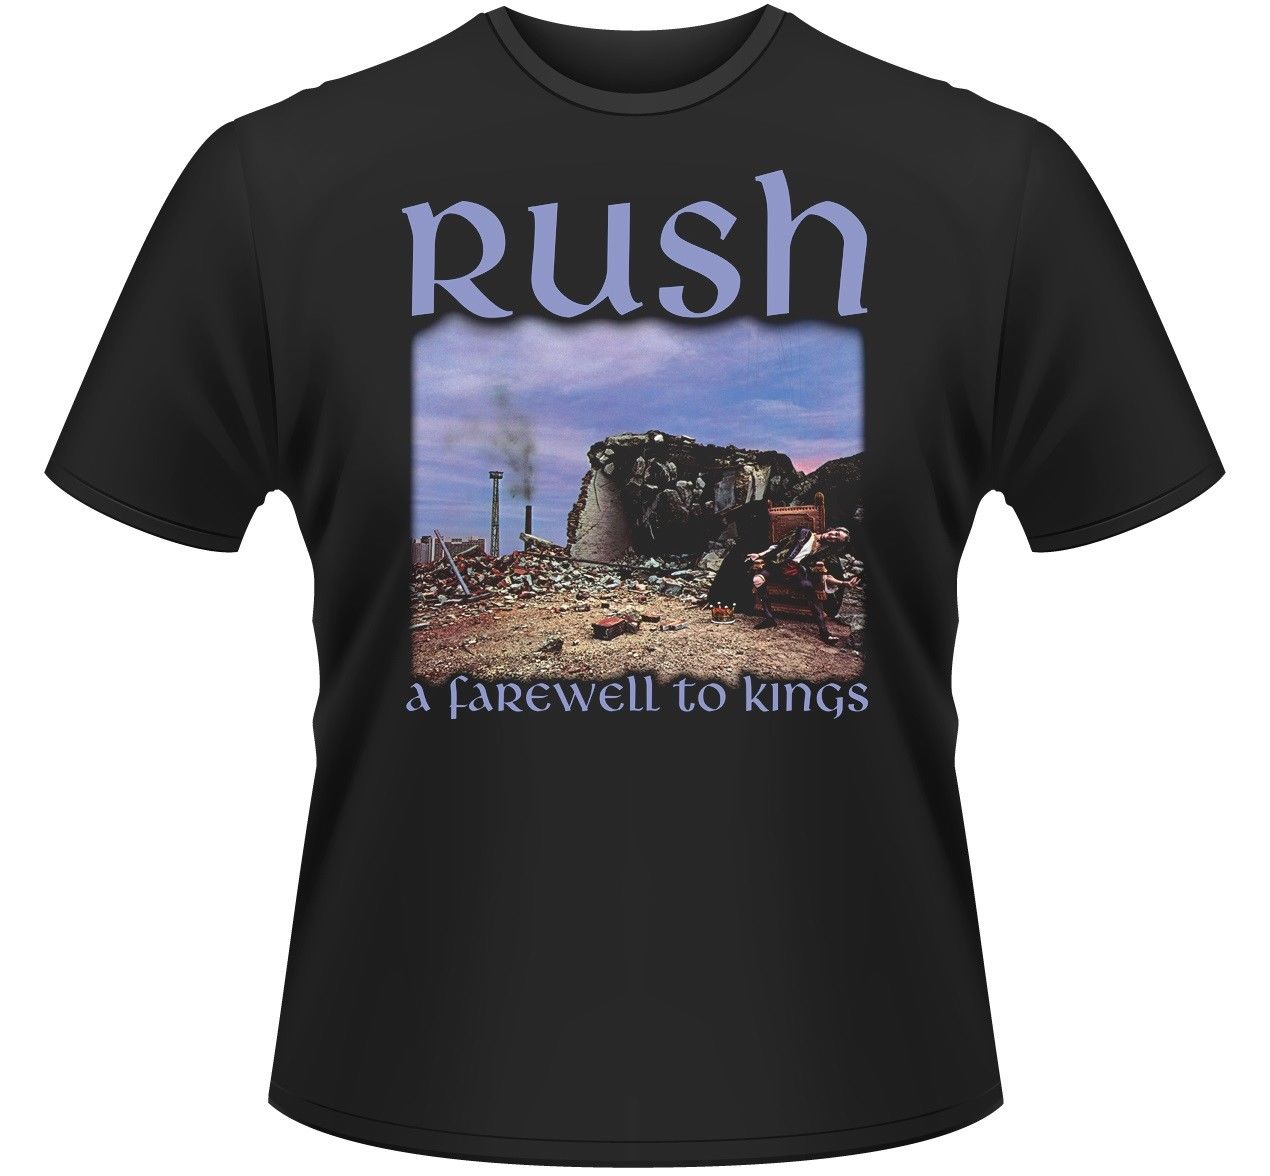 RUSH A FAREWELL TO KINGS T-SHIRT - NUOVO E ORIGINALE ...